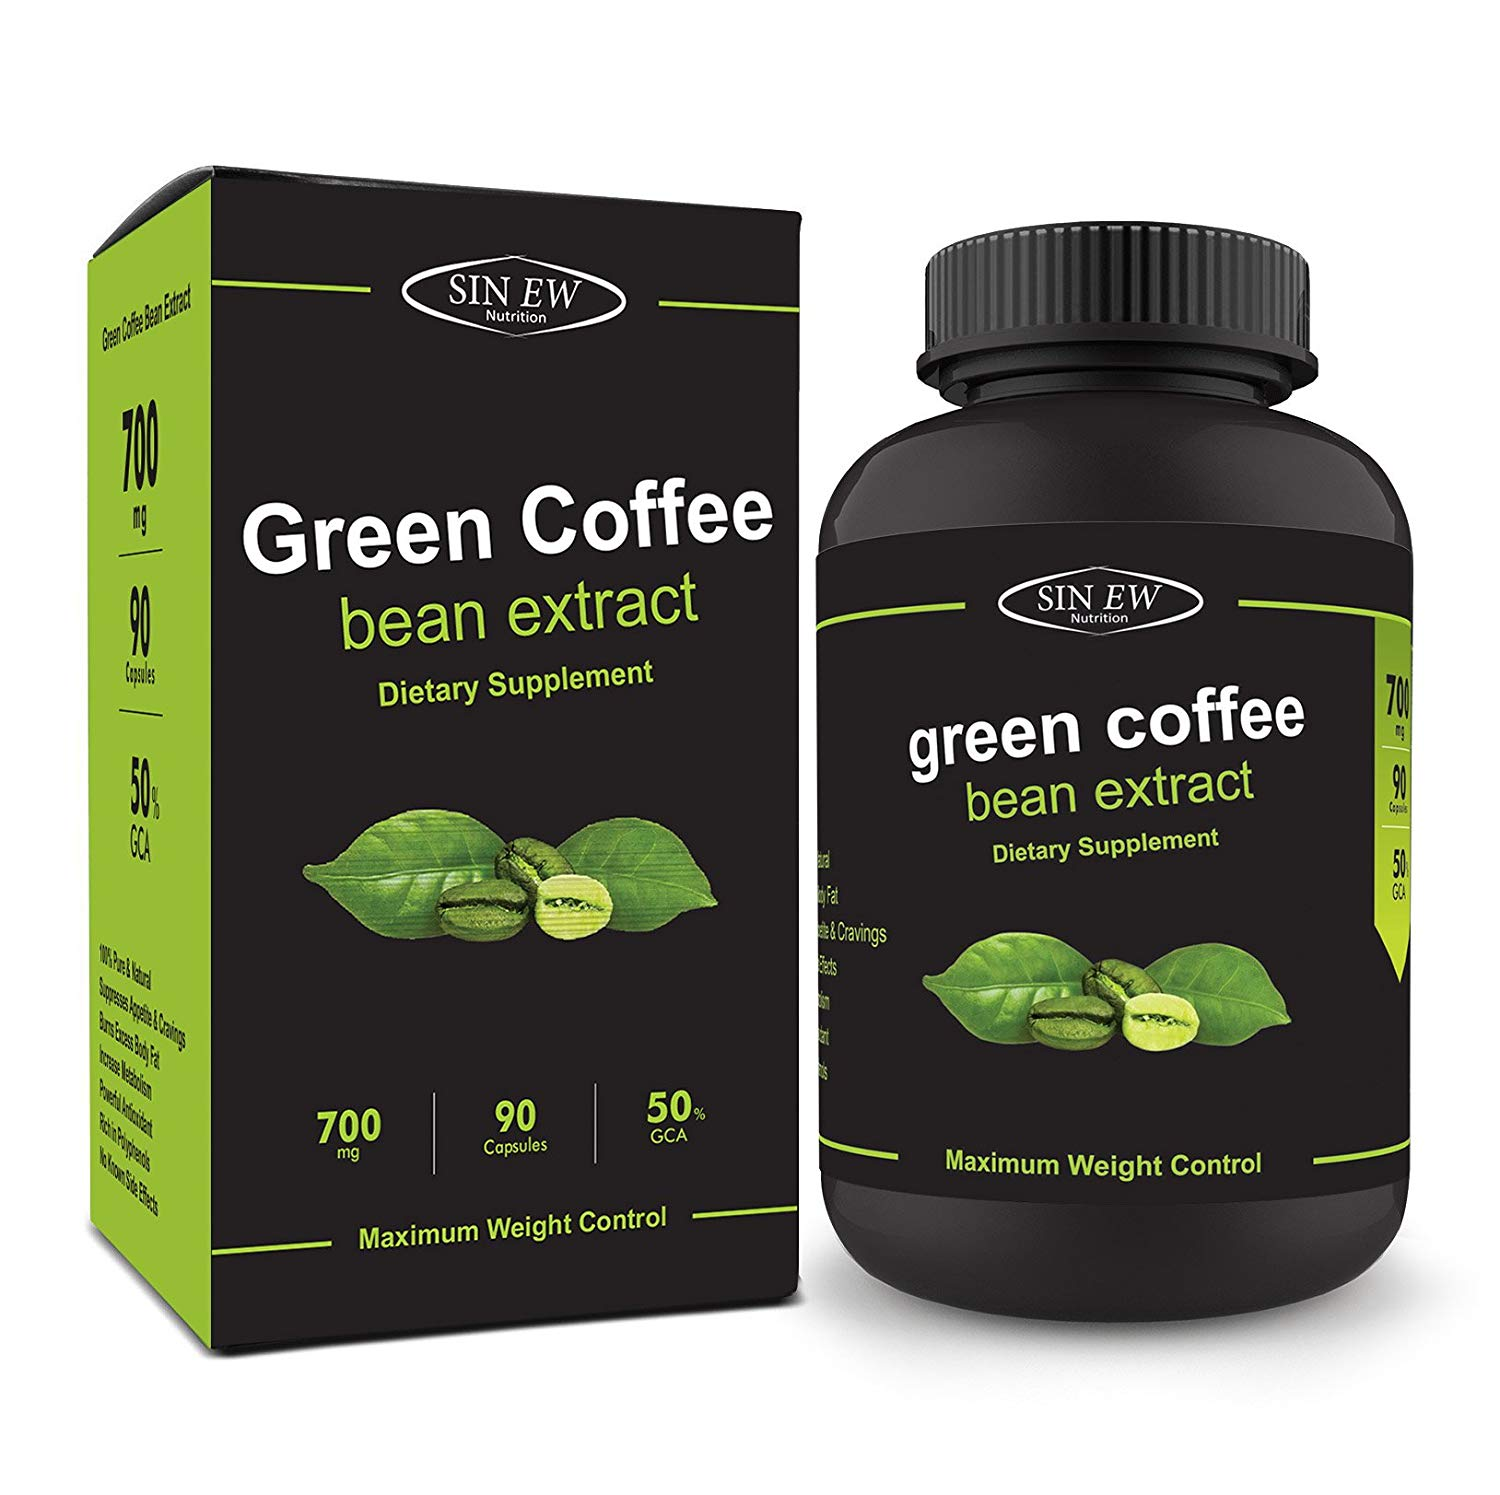 top-green-coffee-brands-india-Sinew_Nutrition_Coffee_Bean_Extract